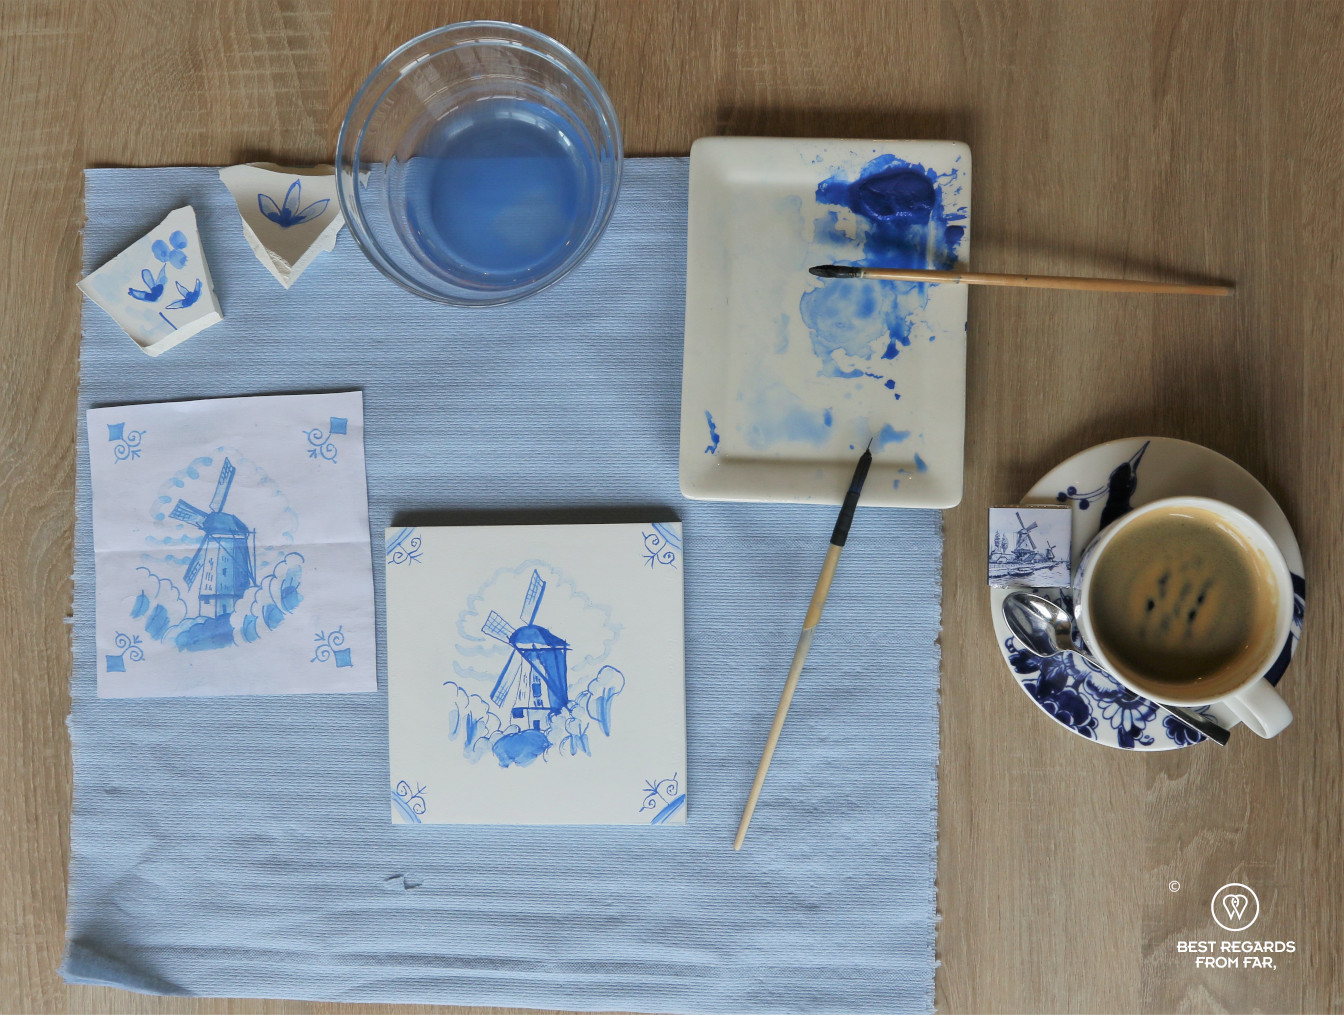 Windmill reproduced by hand on a tile during a tile painting workshop at Royal Delft, the Netherlands